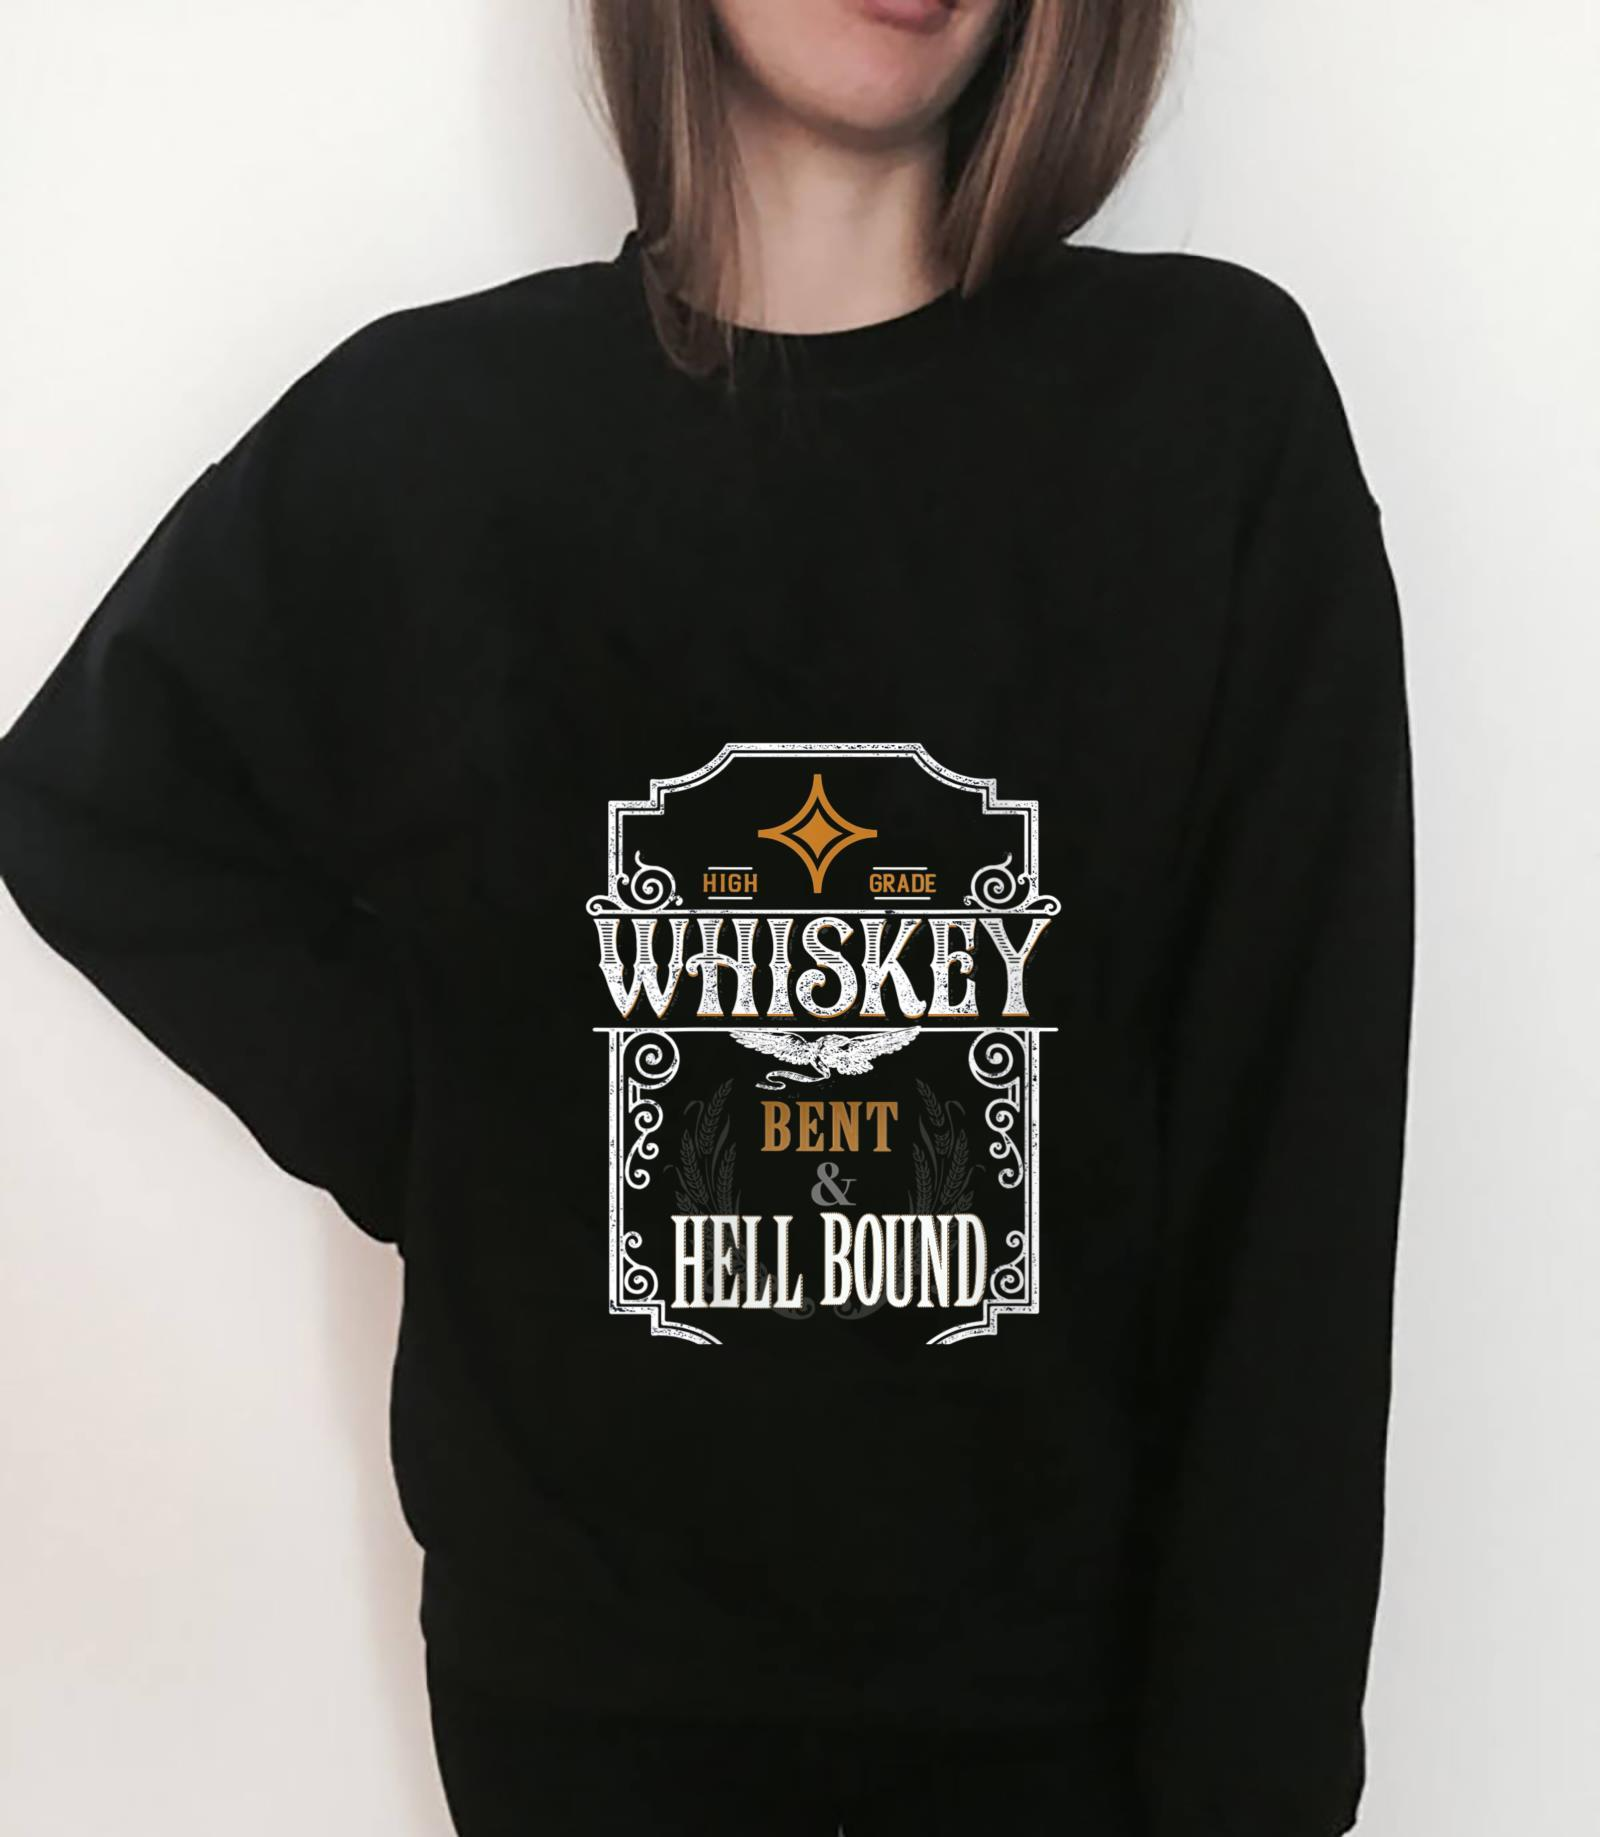 Womens Whiskey Bent And Hell Bound Vintage Retro Country Music Shirt sweater